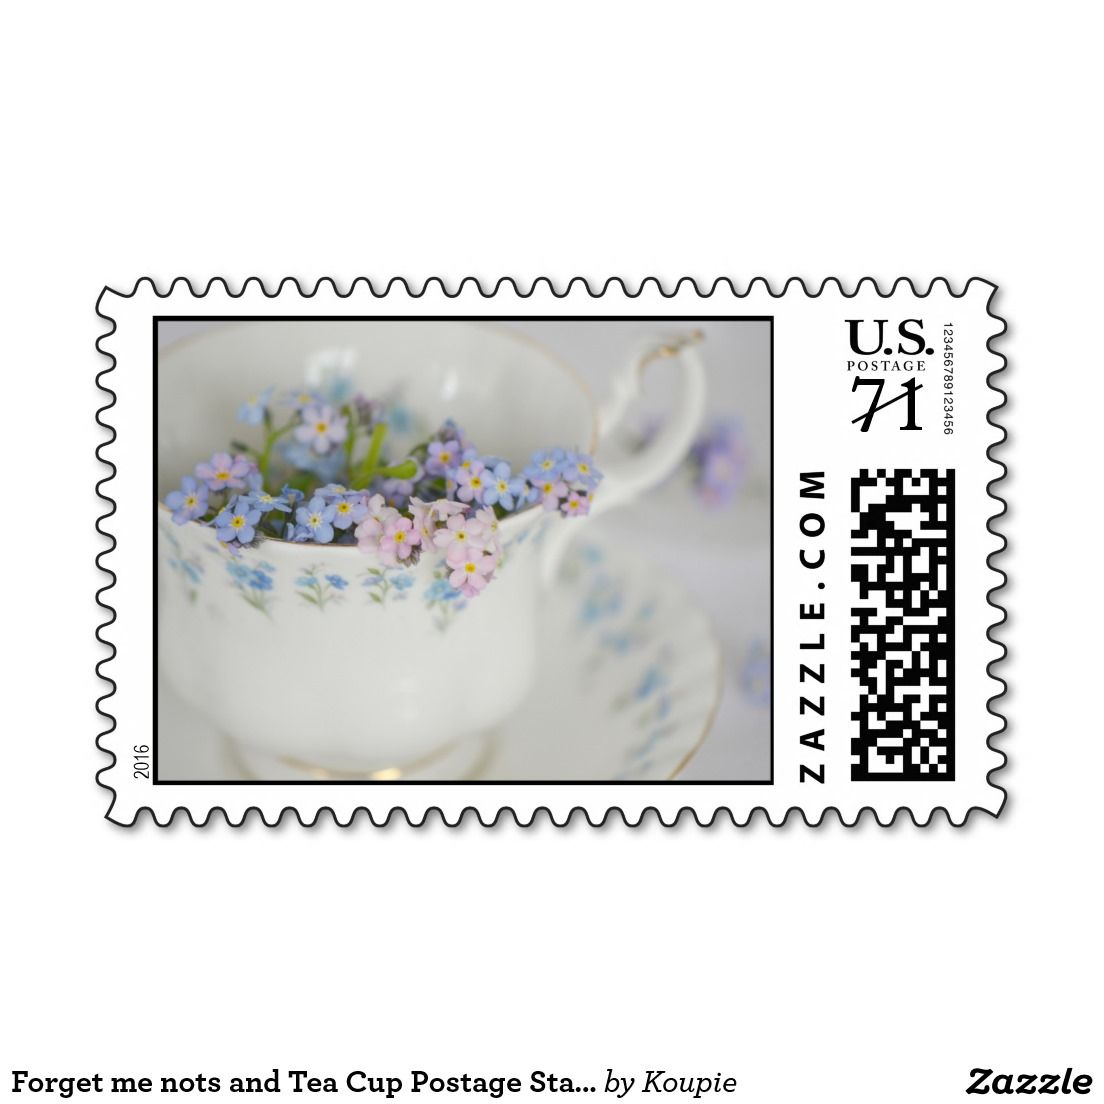 Forget me nots and Tea Cup Postage Stamps